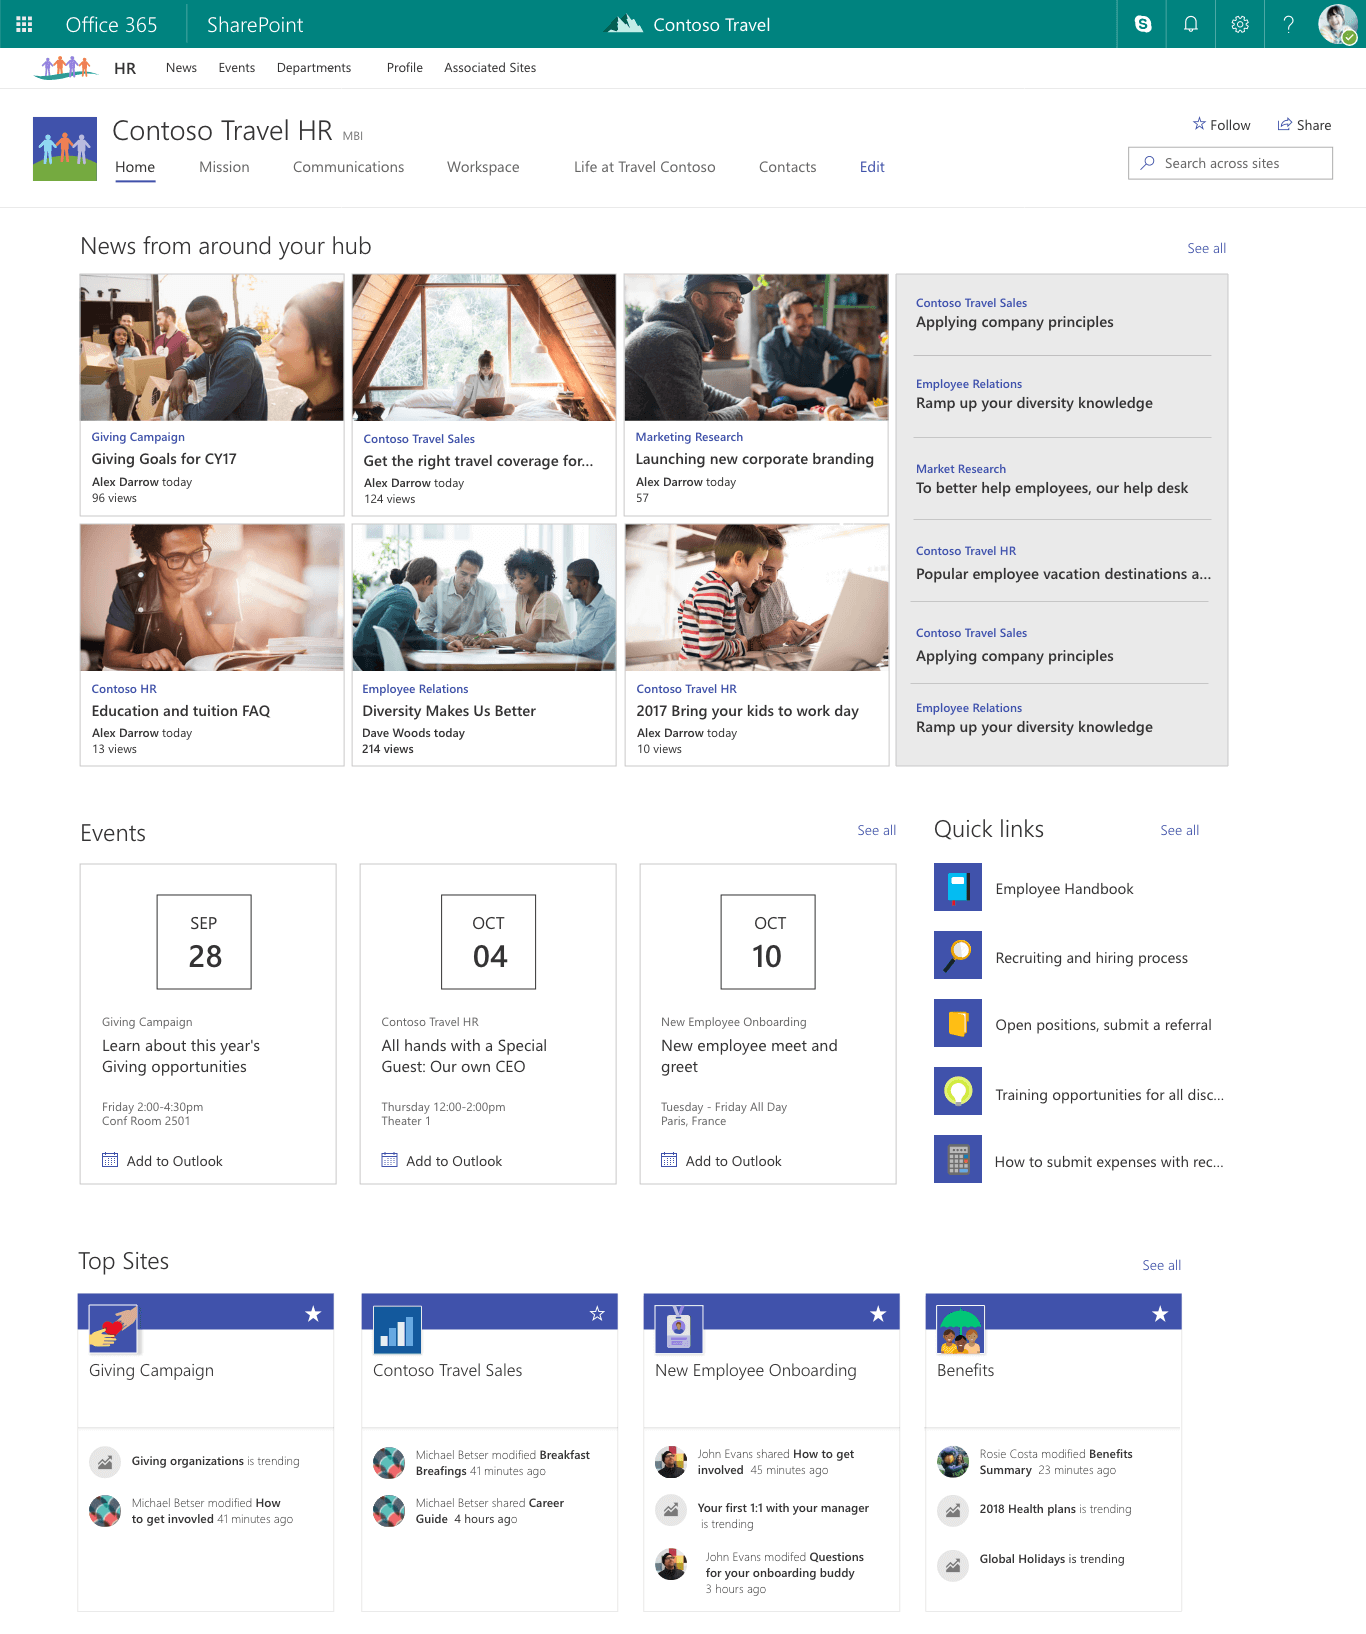 The intranet managers guide to Office 365 SharePoint hub sites ...